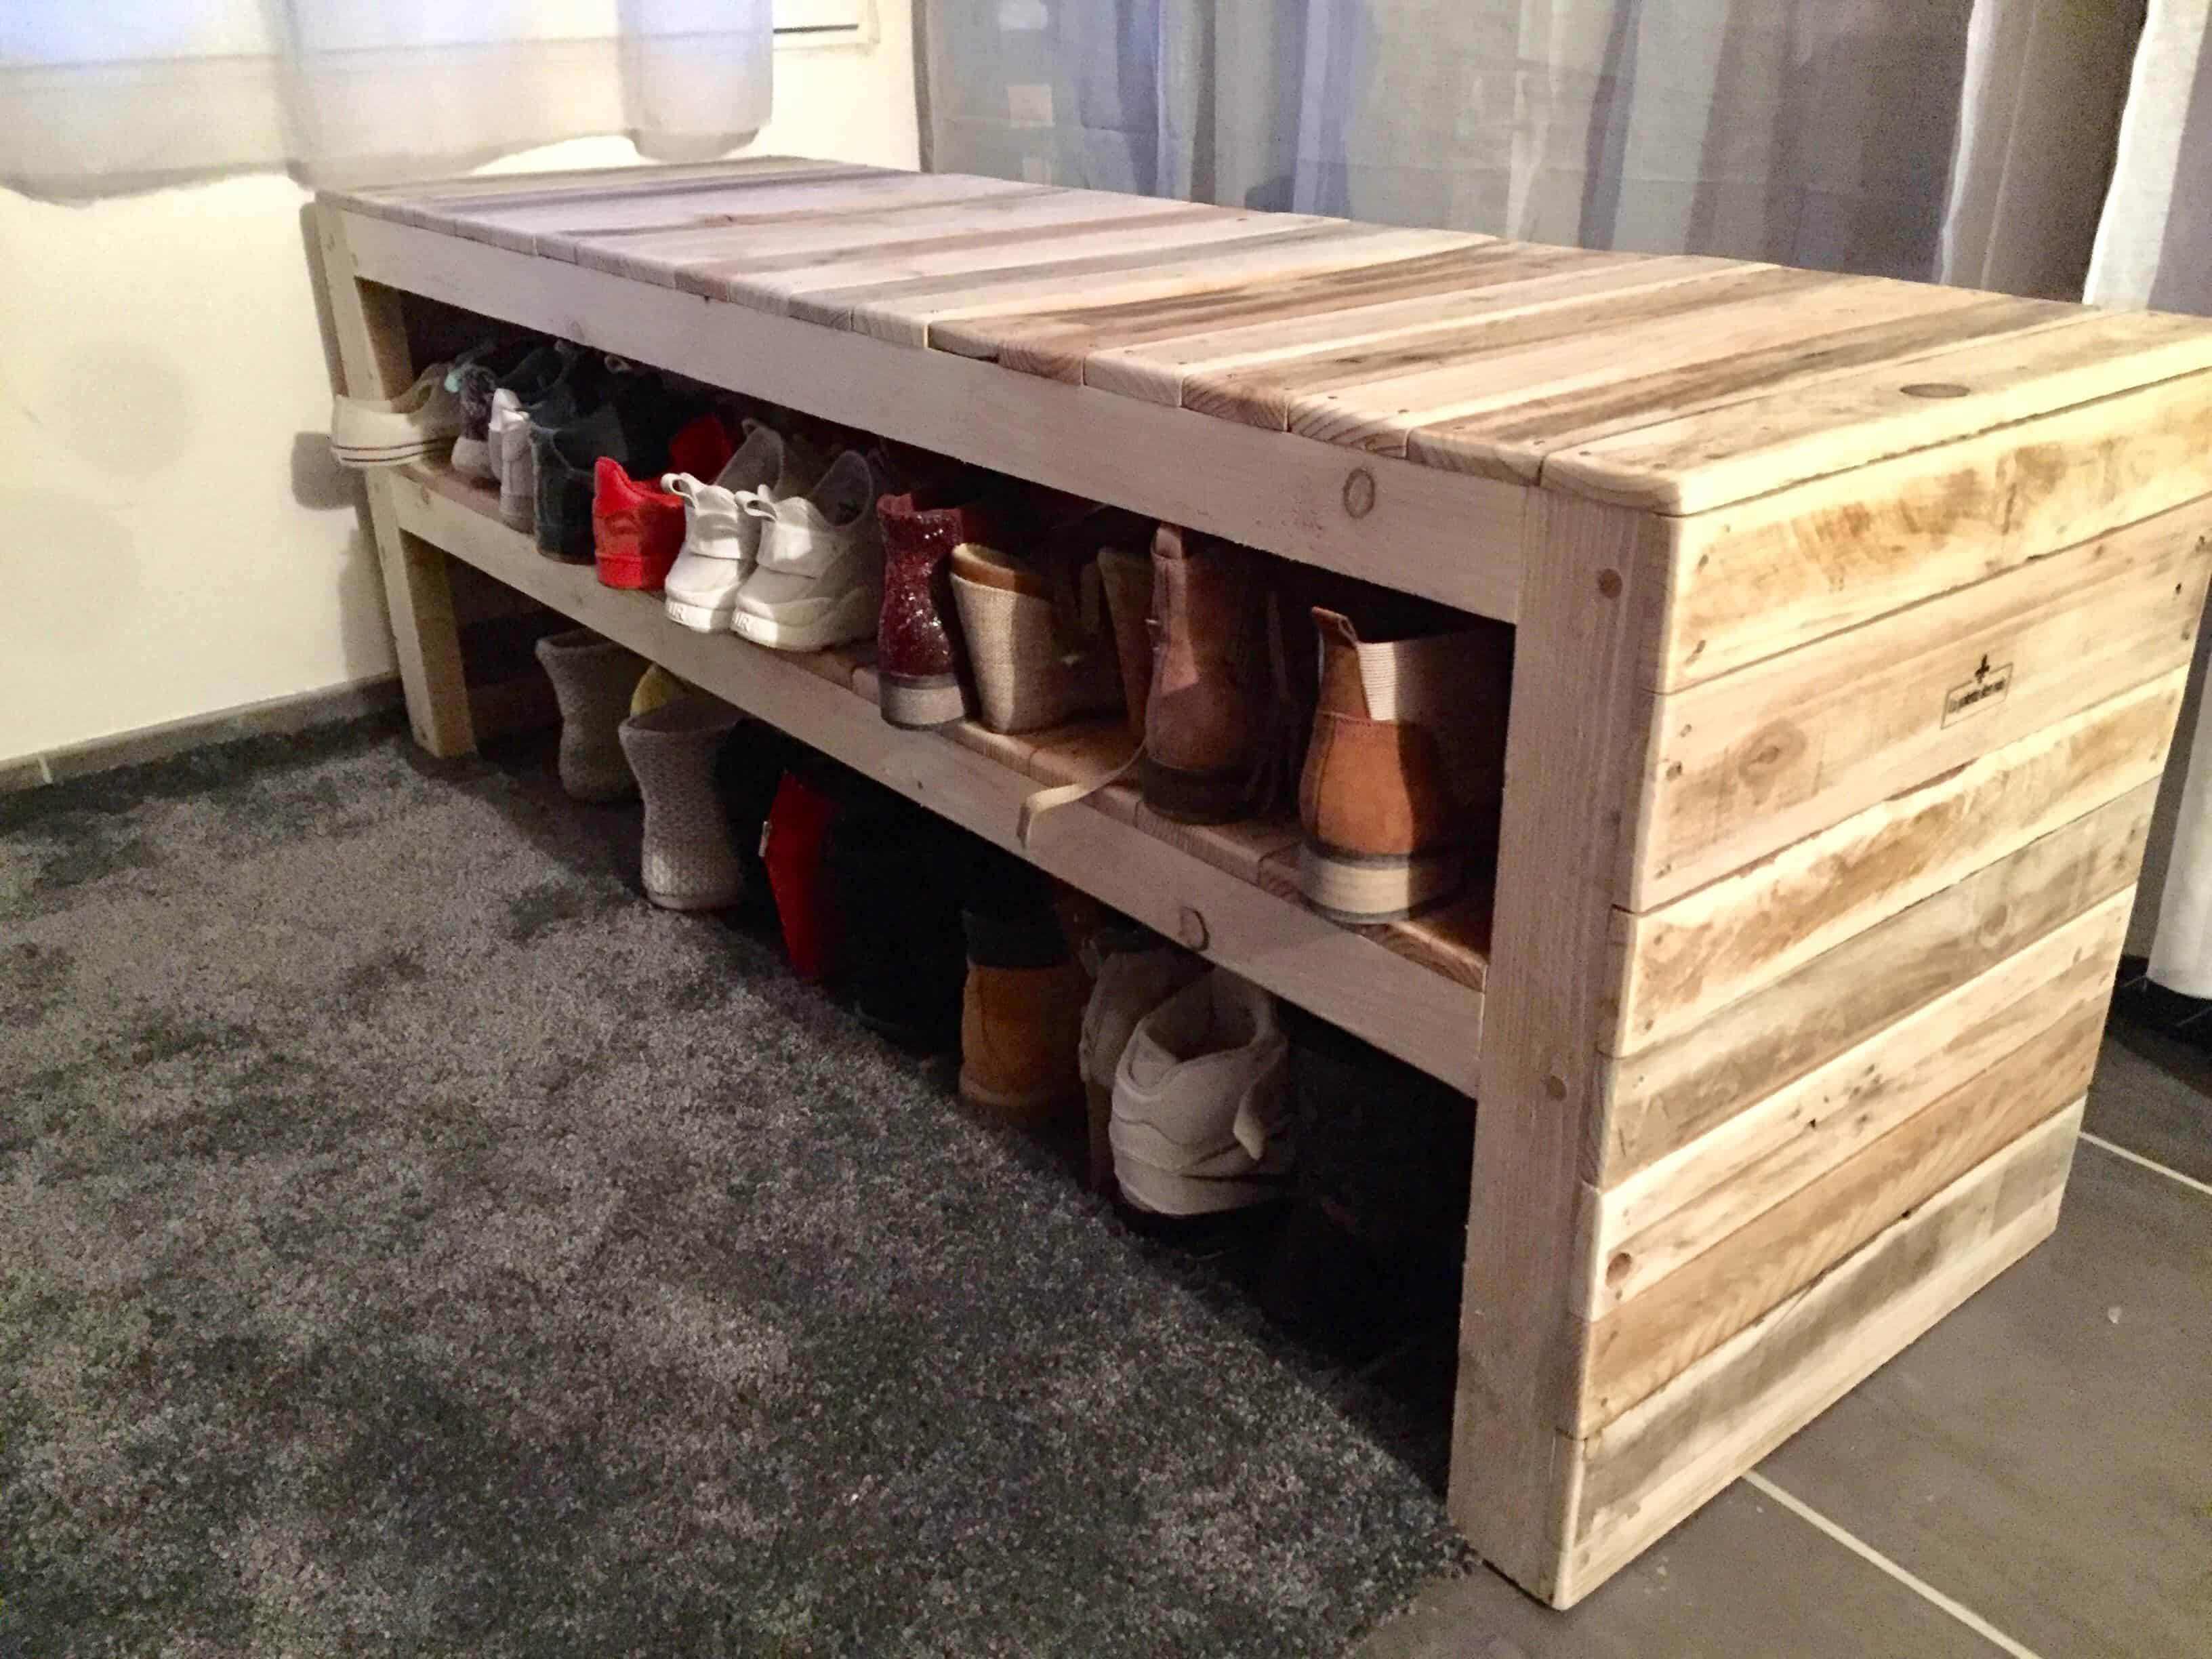 This Pallet Bench Has Two Shoe Storage Shelves • 1001 Pallets